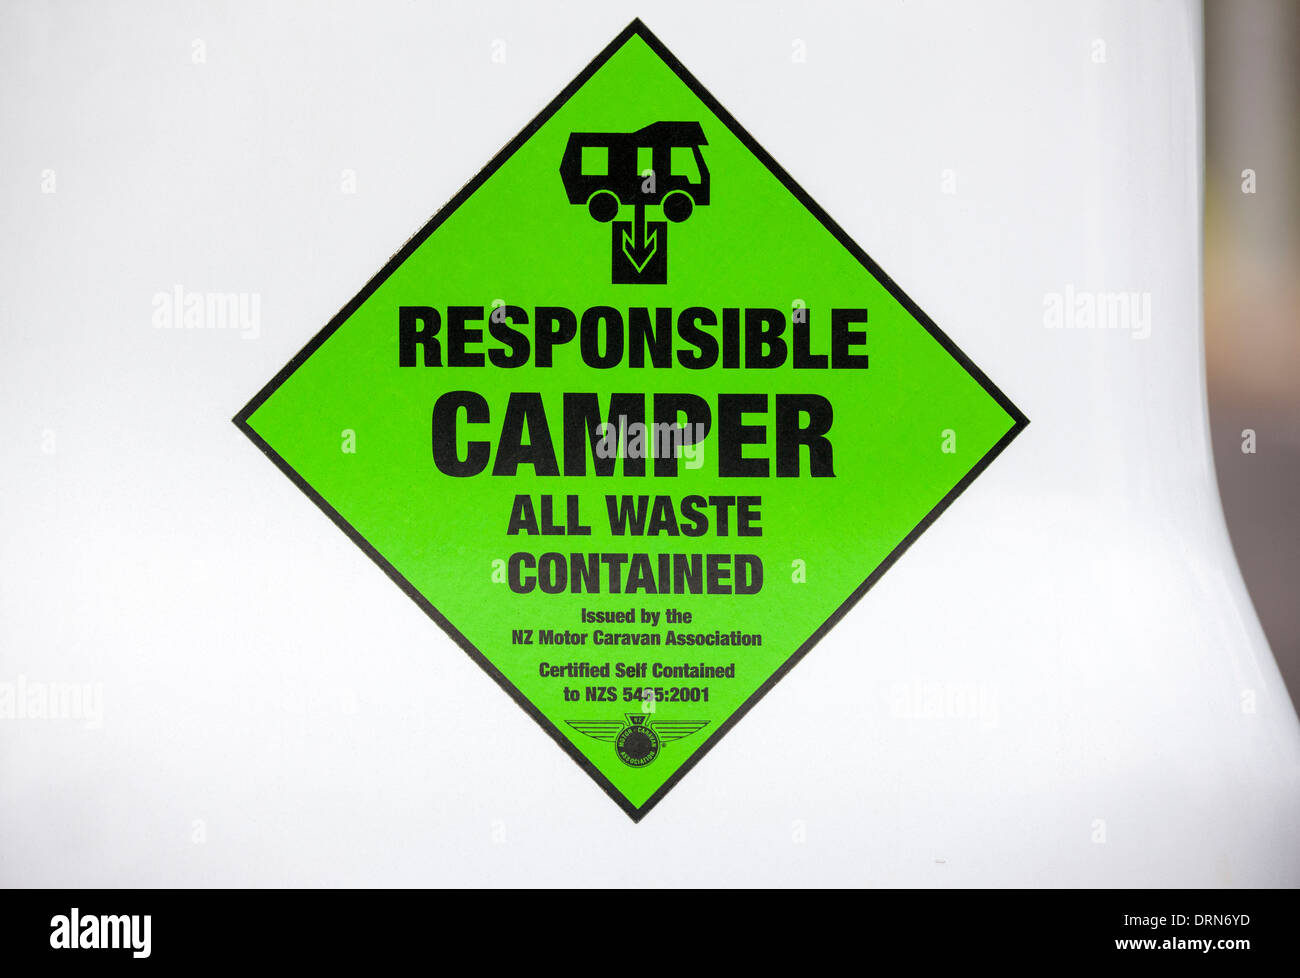 Certified Self Contained sticker on a campervan camper van motorhome motor home. New Zealand certification for freedom camping. - Stock Image